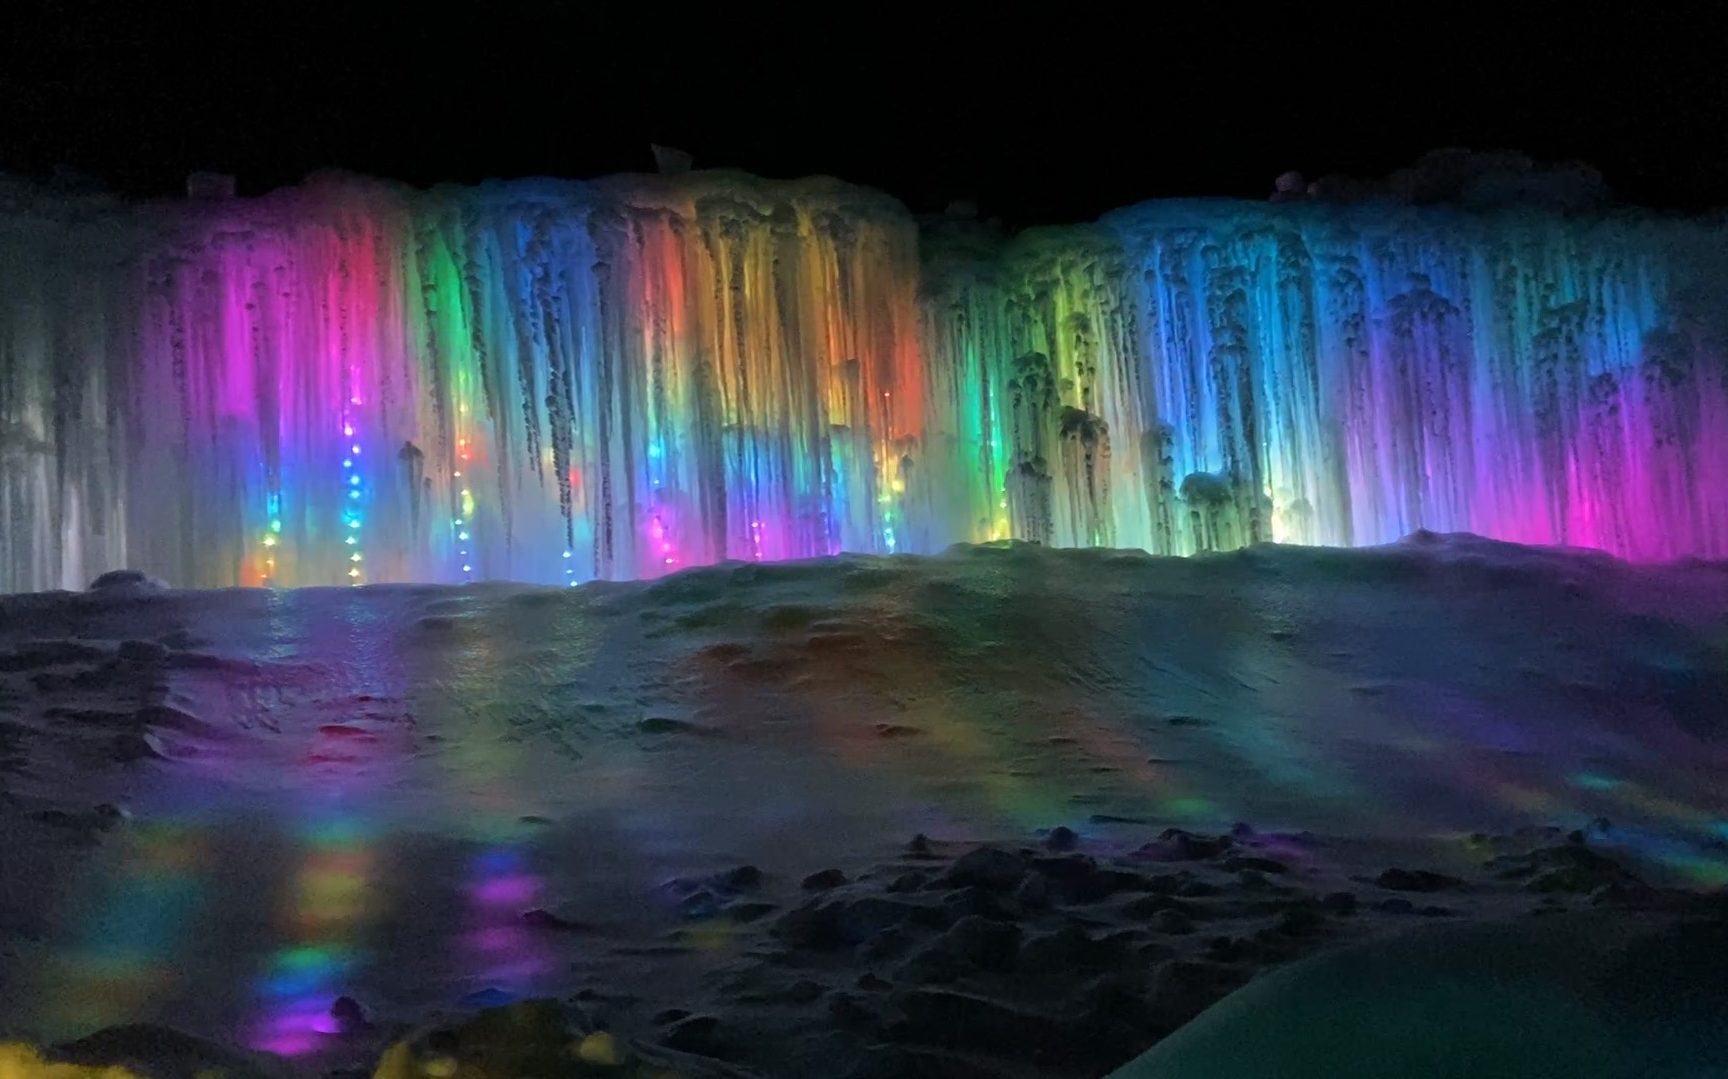 Long wall of large icicles with various LED light colors shining through them on a dark night at the Ice Castles in Lake Geneva.